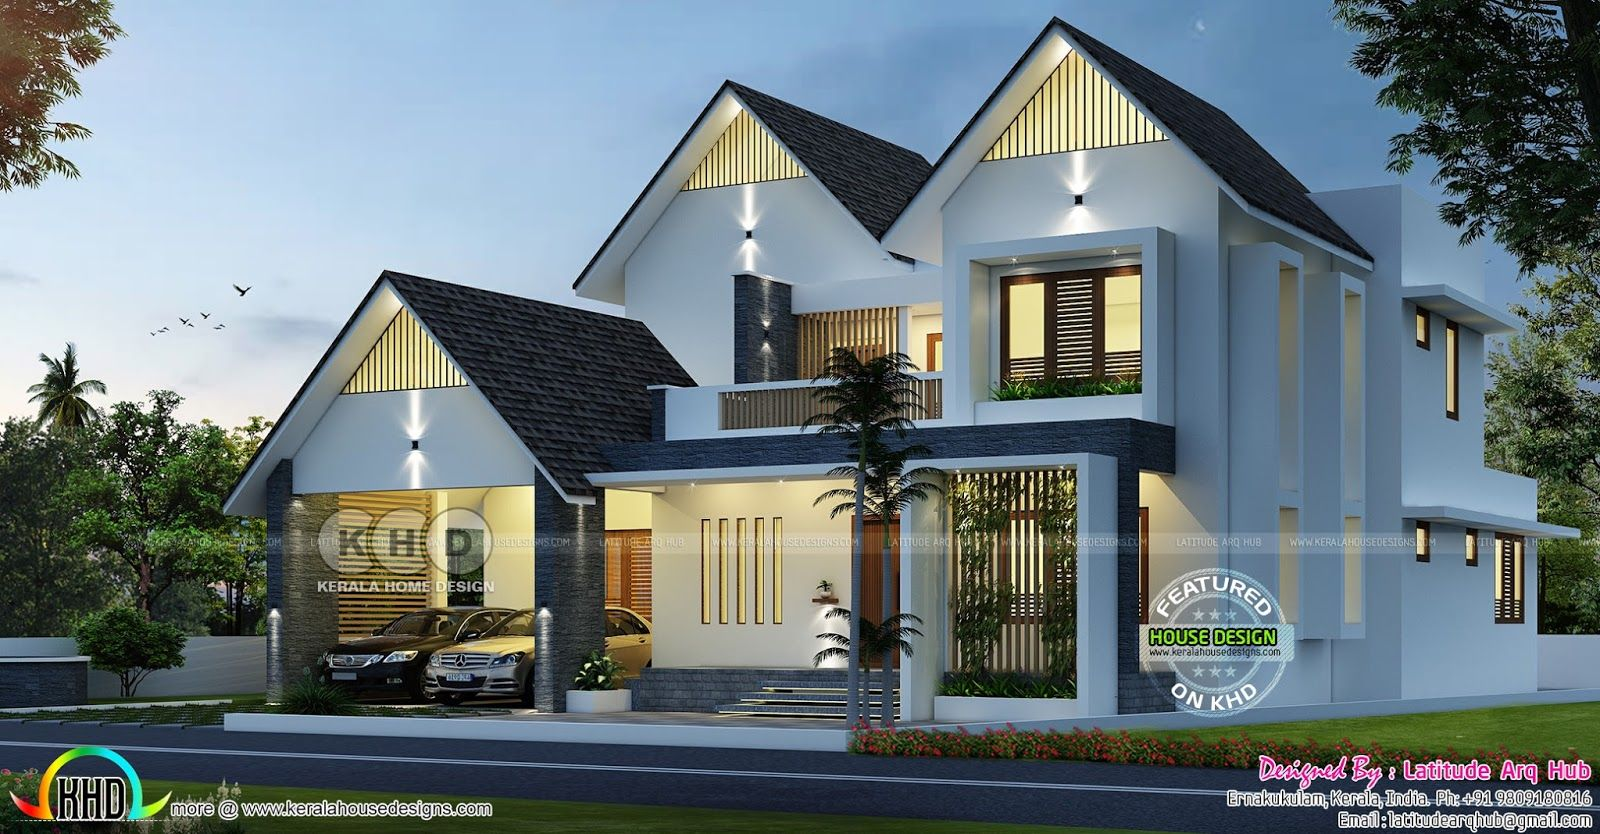 Sloping Roof Western Model Home Design Kerala House Design Colonial House Exteriors House Designs Exterior